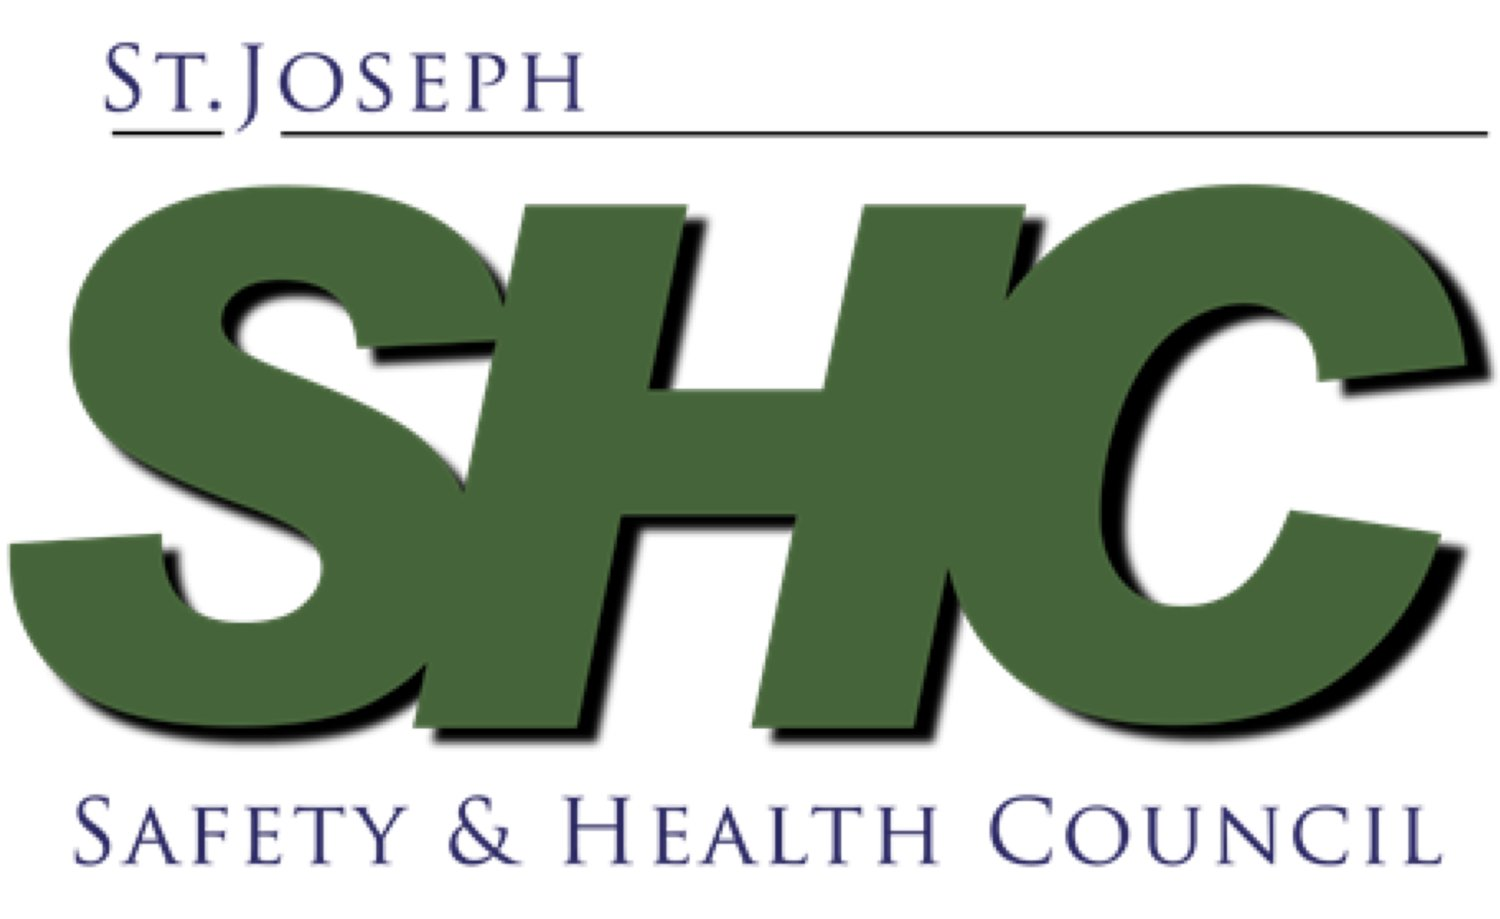 St. Joseph Safety & Health Council